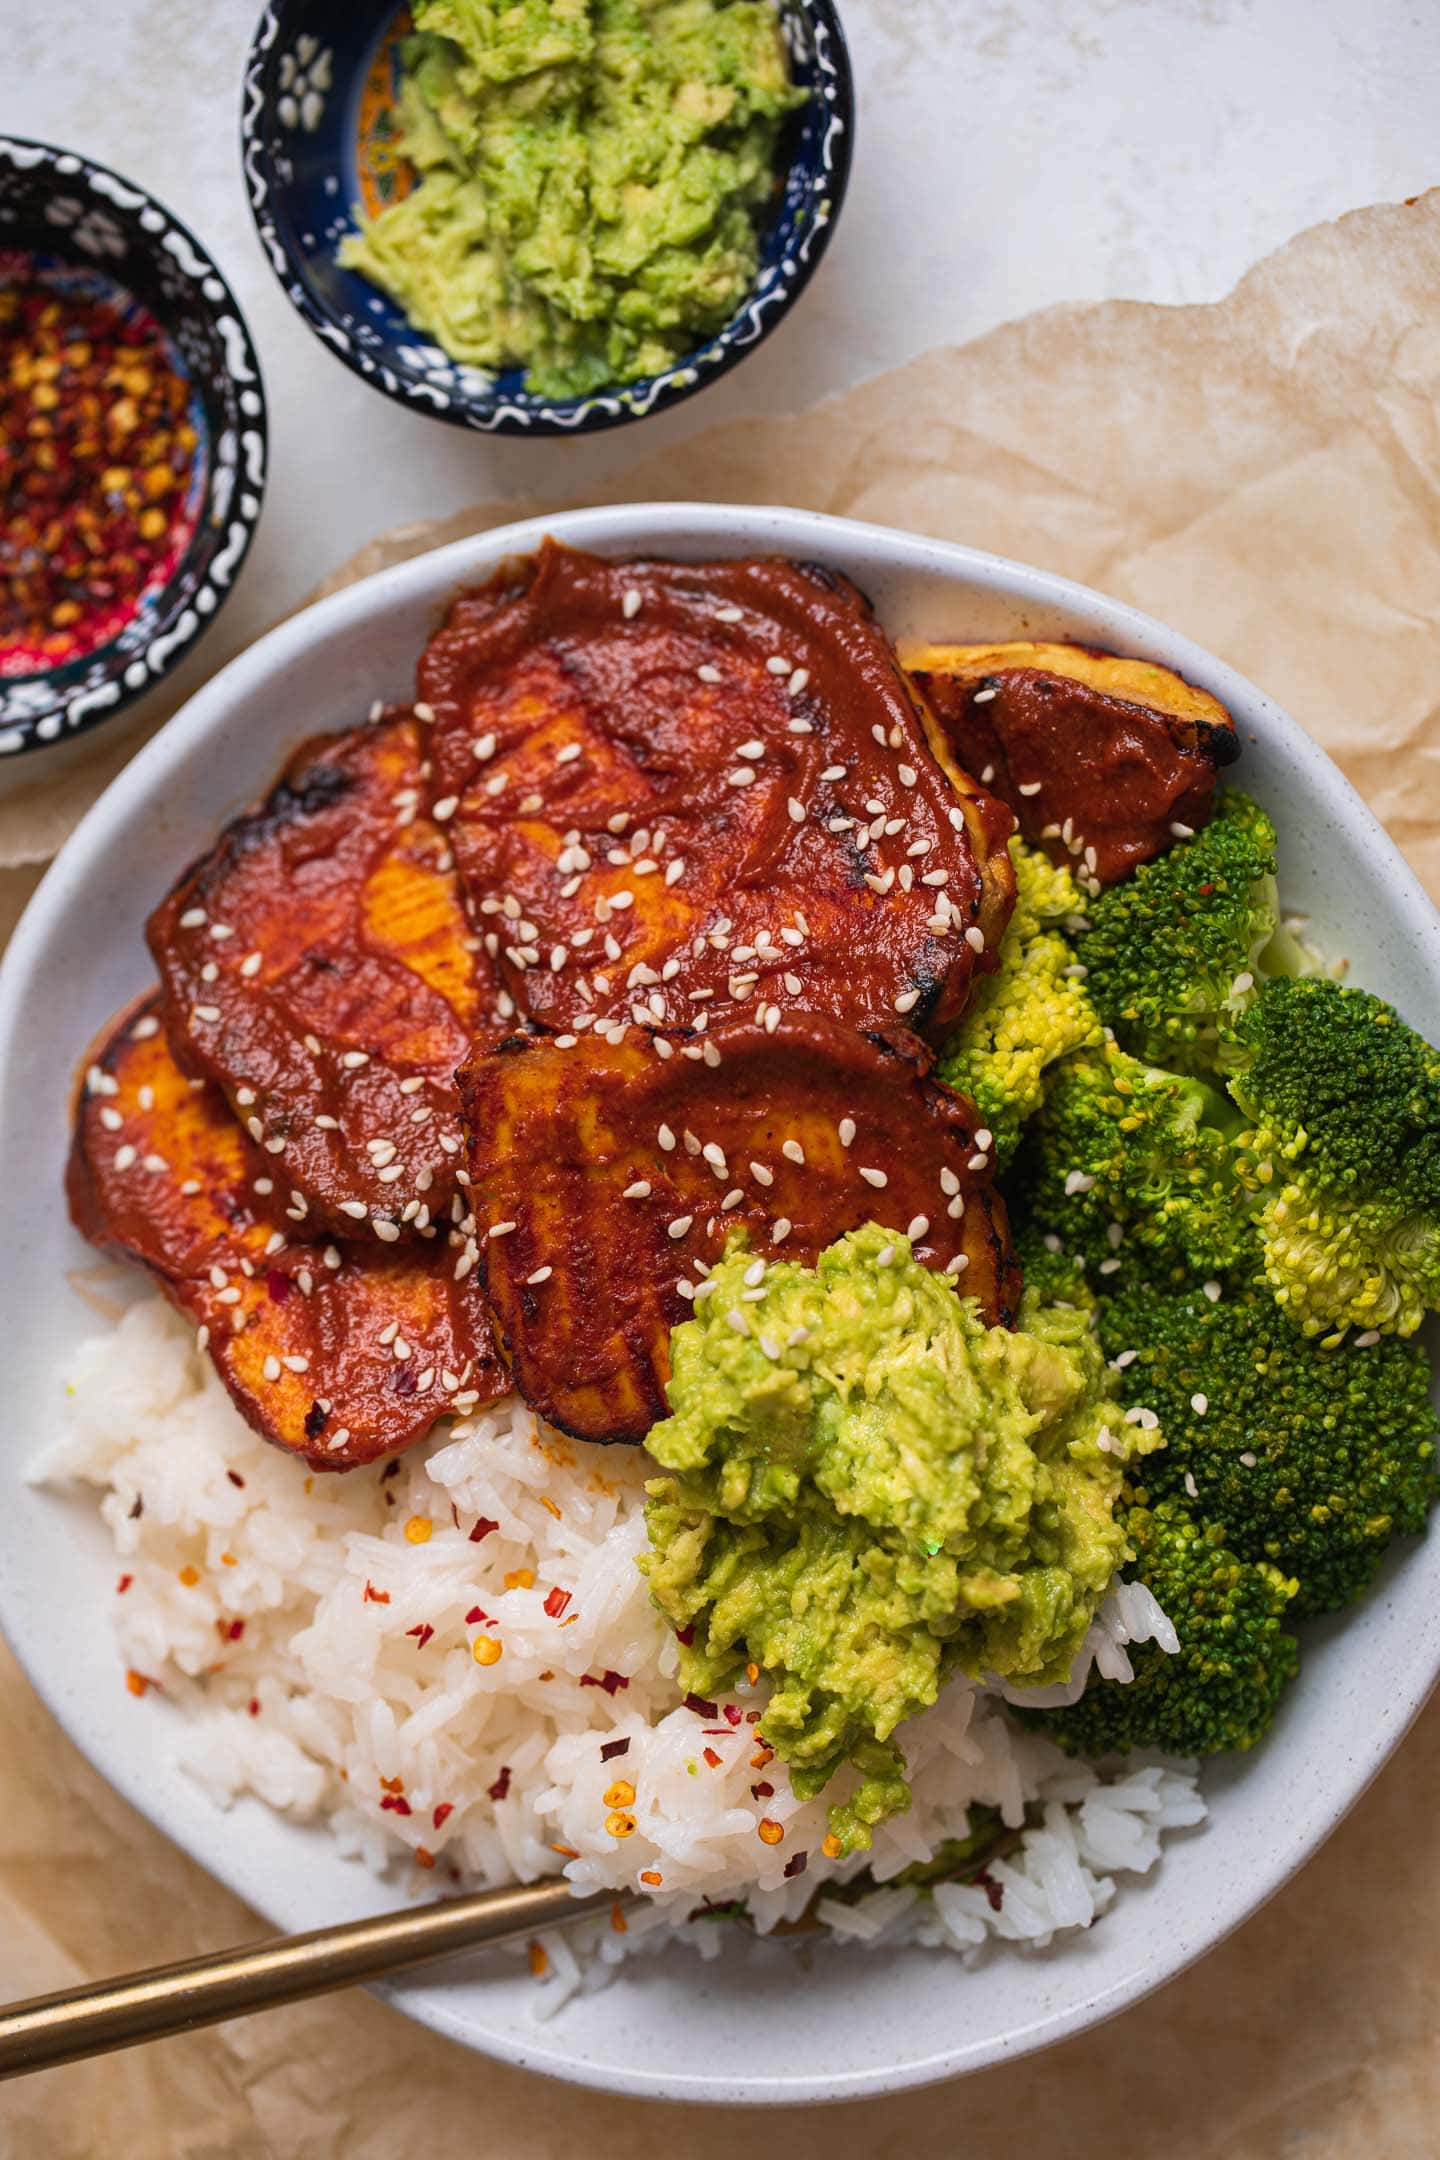 Bowl with baked tofu, broccoli and rice